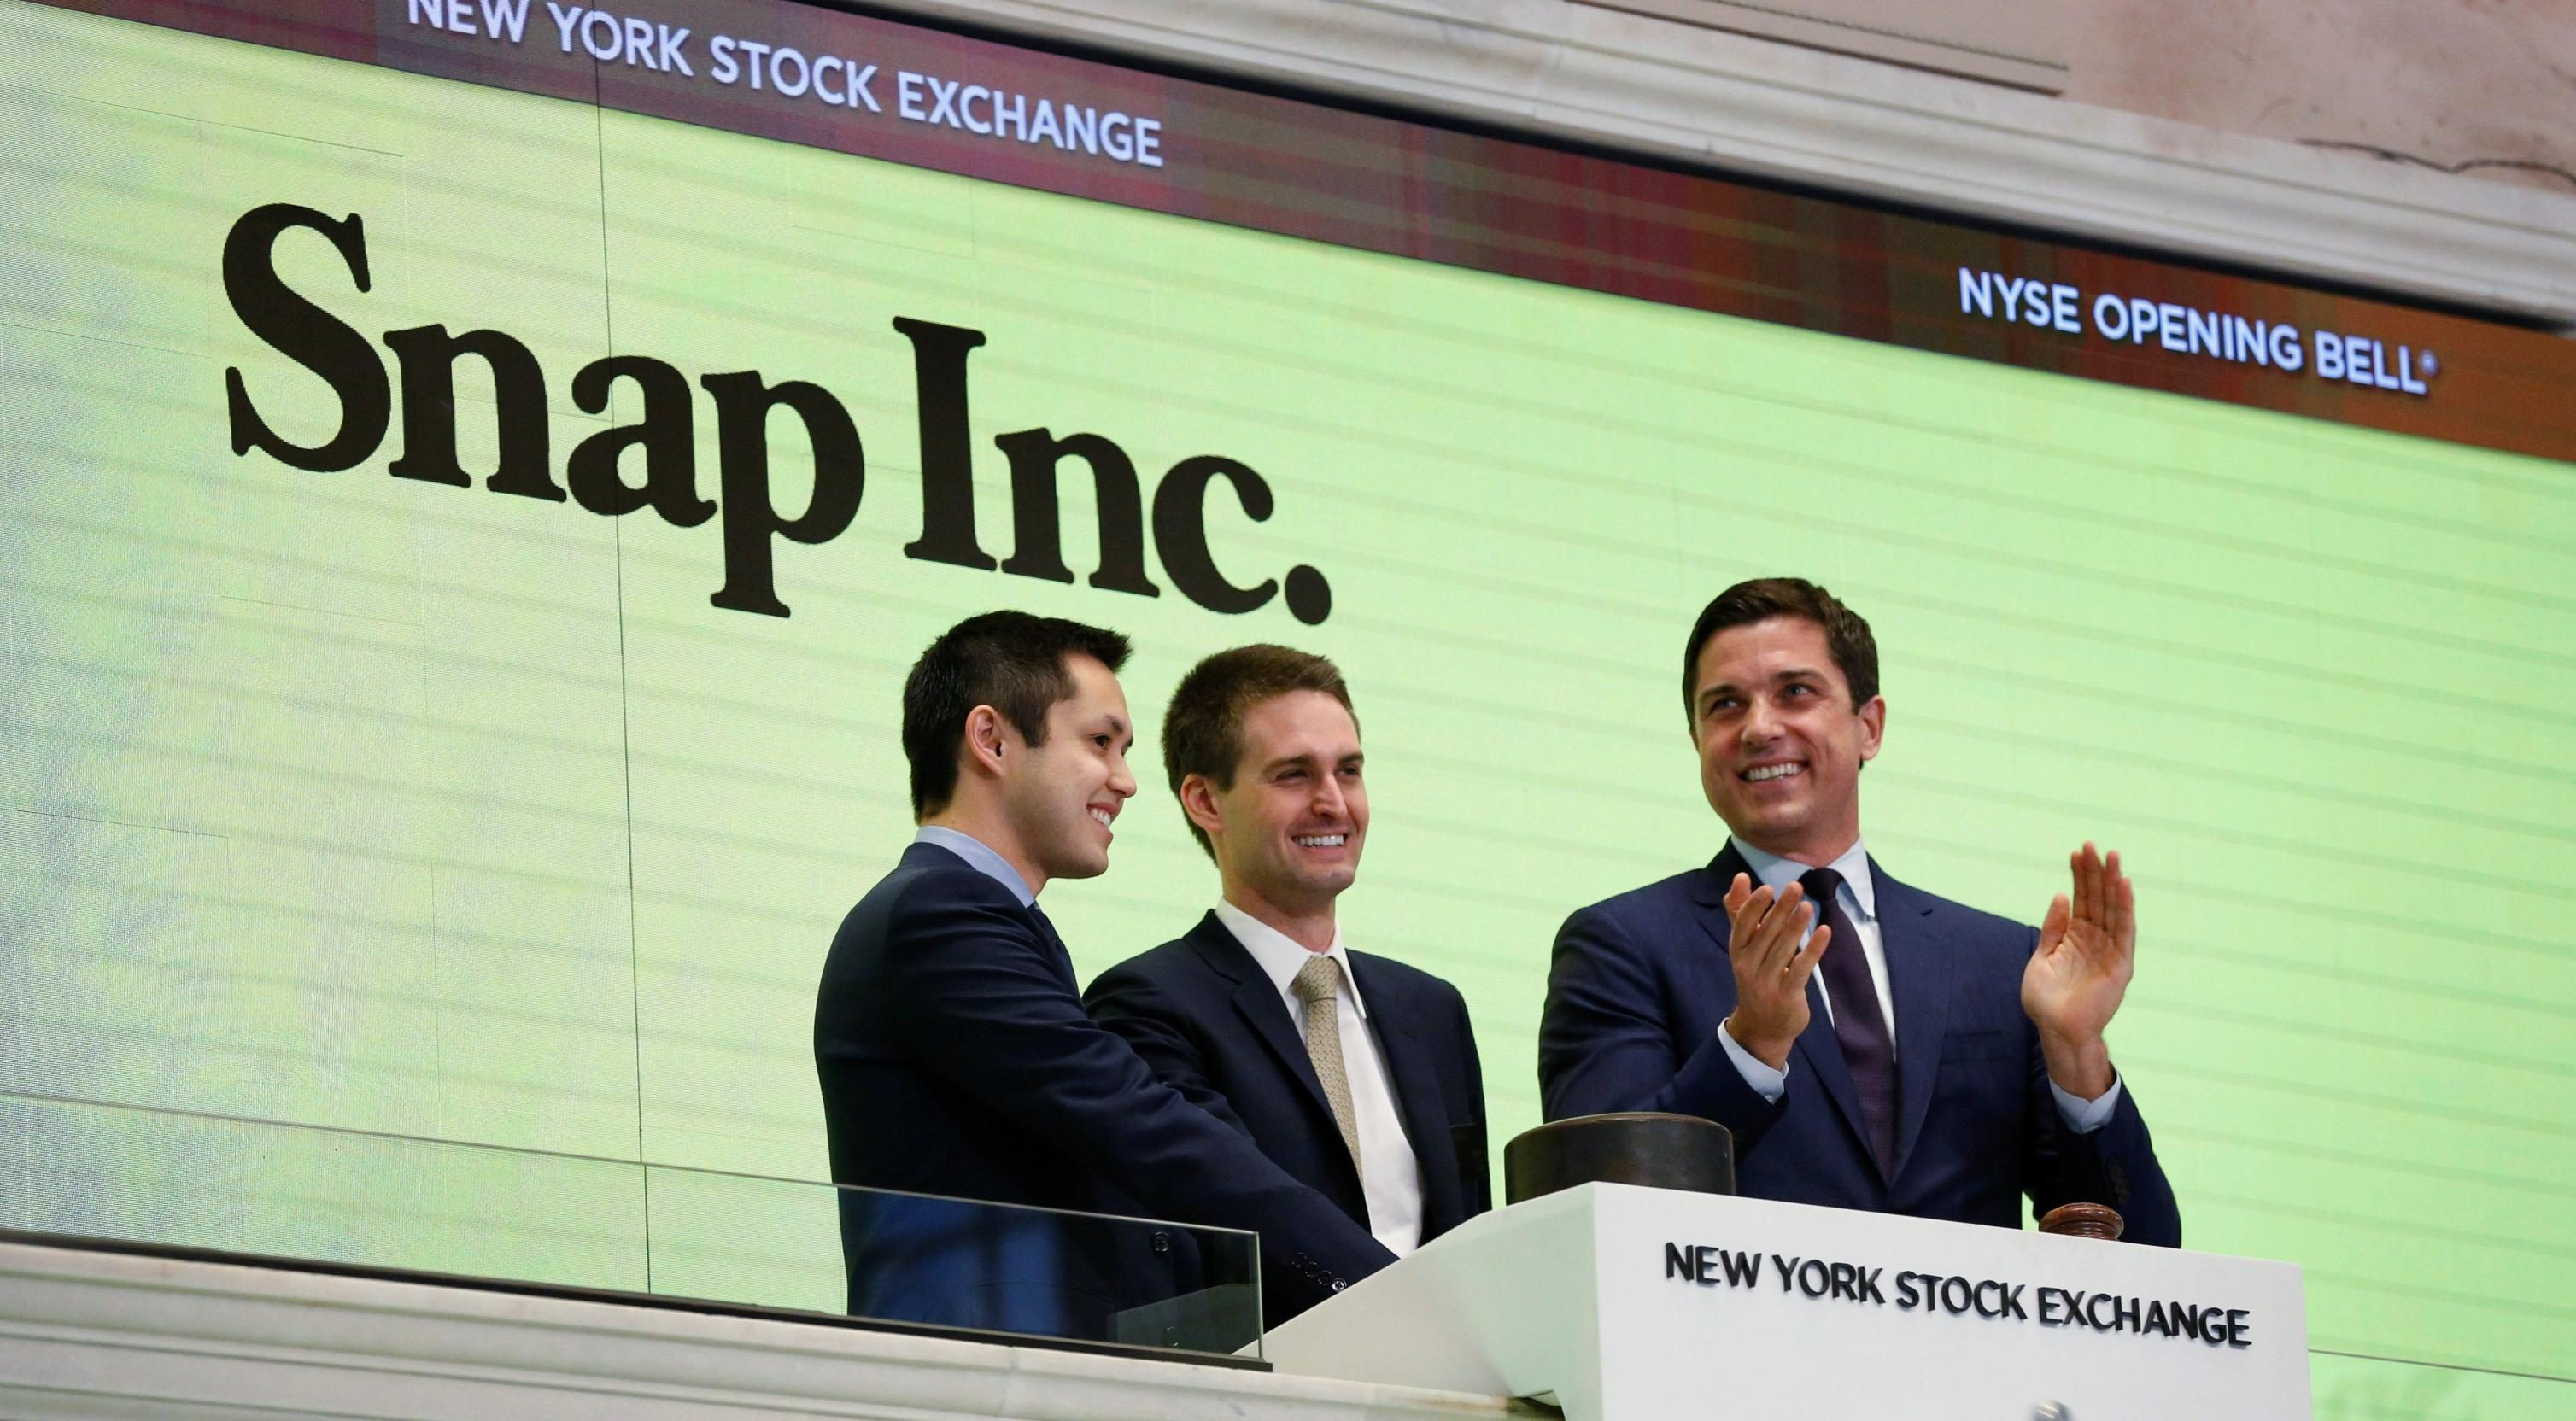 Snap cofounders Evan Spiegel (C) and Bobby Murphy ring the opening bell of the New York Stock Exchange (NYSE) with NYSE Group President Thomas Farley shortly before the company's IPO in New York, U.S., March 2, 2017. REUTERS/Lucas Jackson TPX IMAGES OF THE DAY - RC15379A9A10